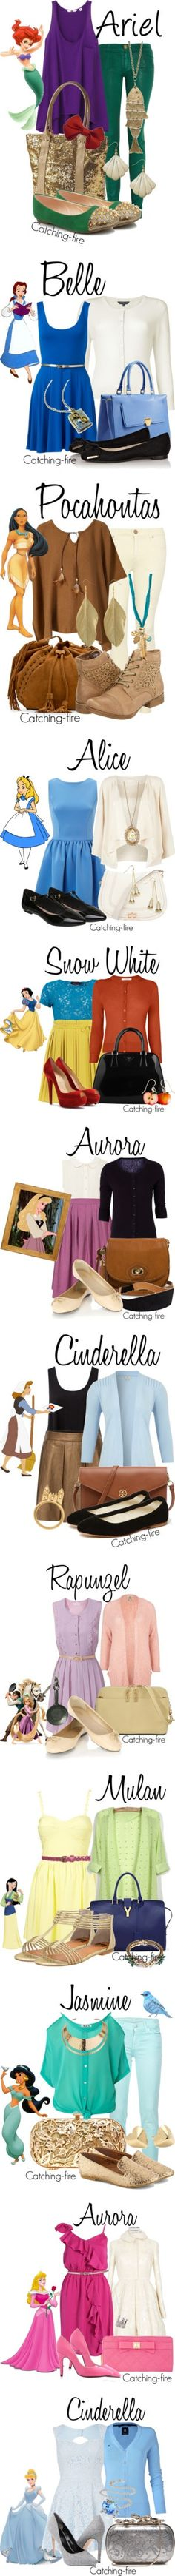 Disney Princess Modern Day Outfits